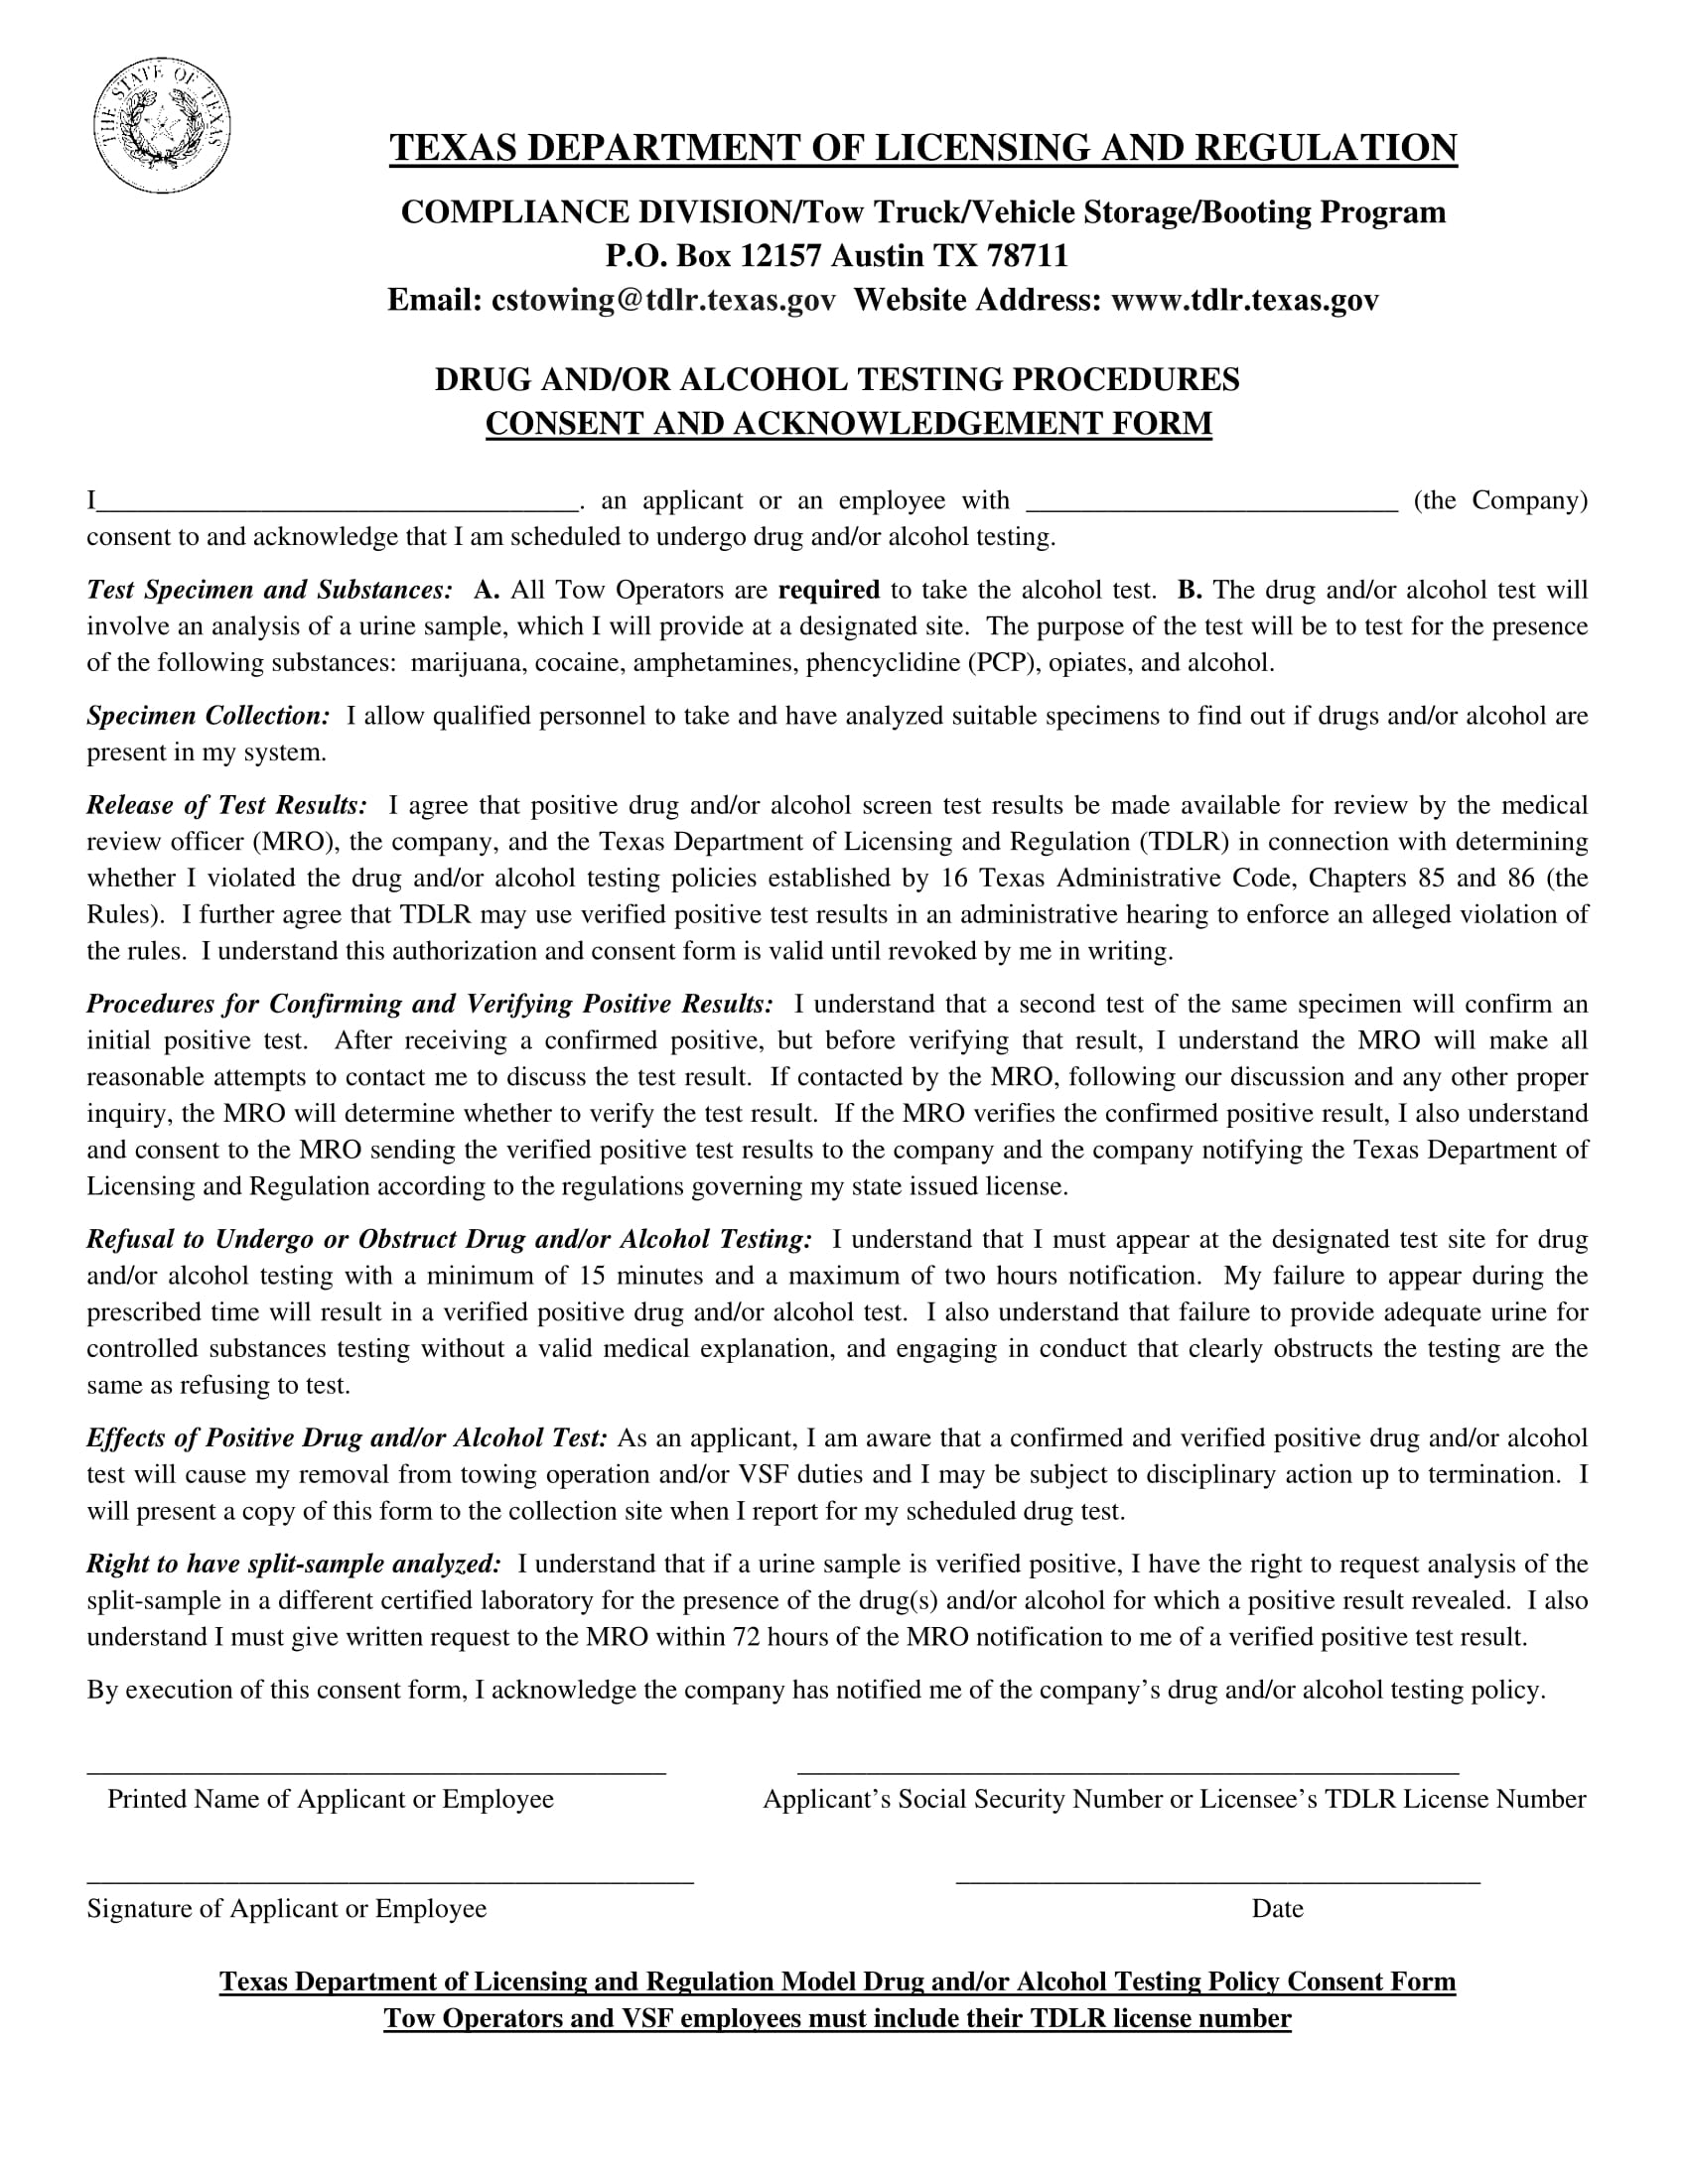 alcohol and drug abuse policy template - 14 drug testing consent forms free pdf format download